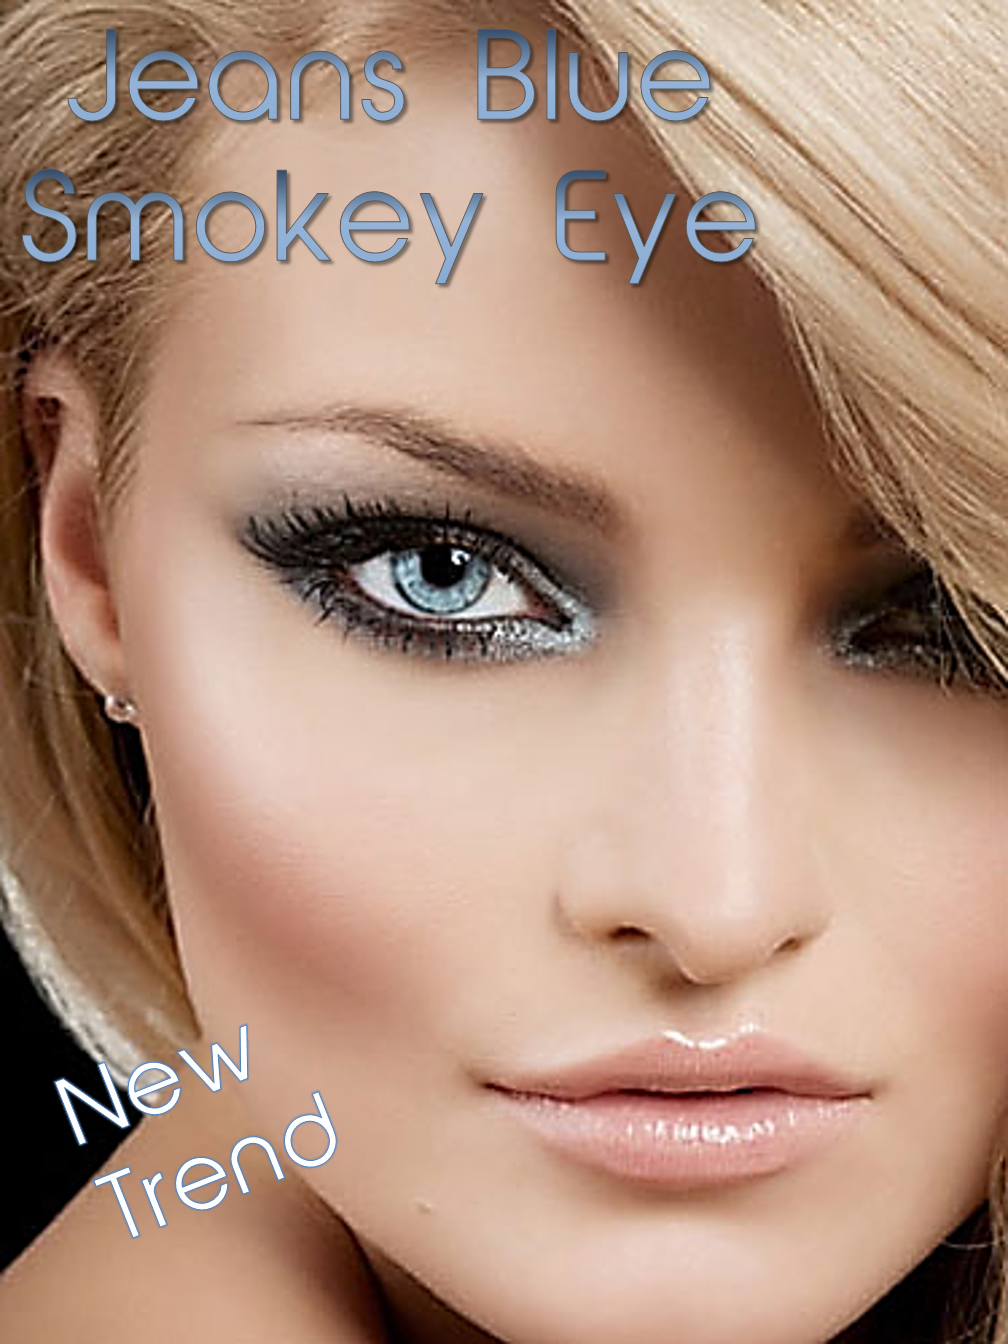 Jeans Blue Smoky Eye